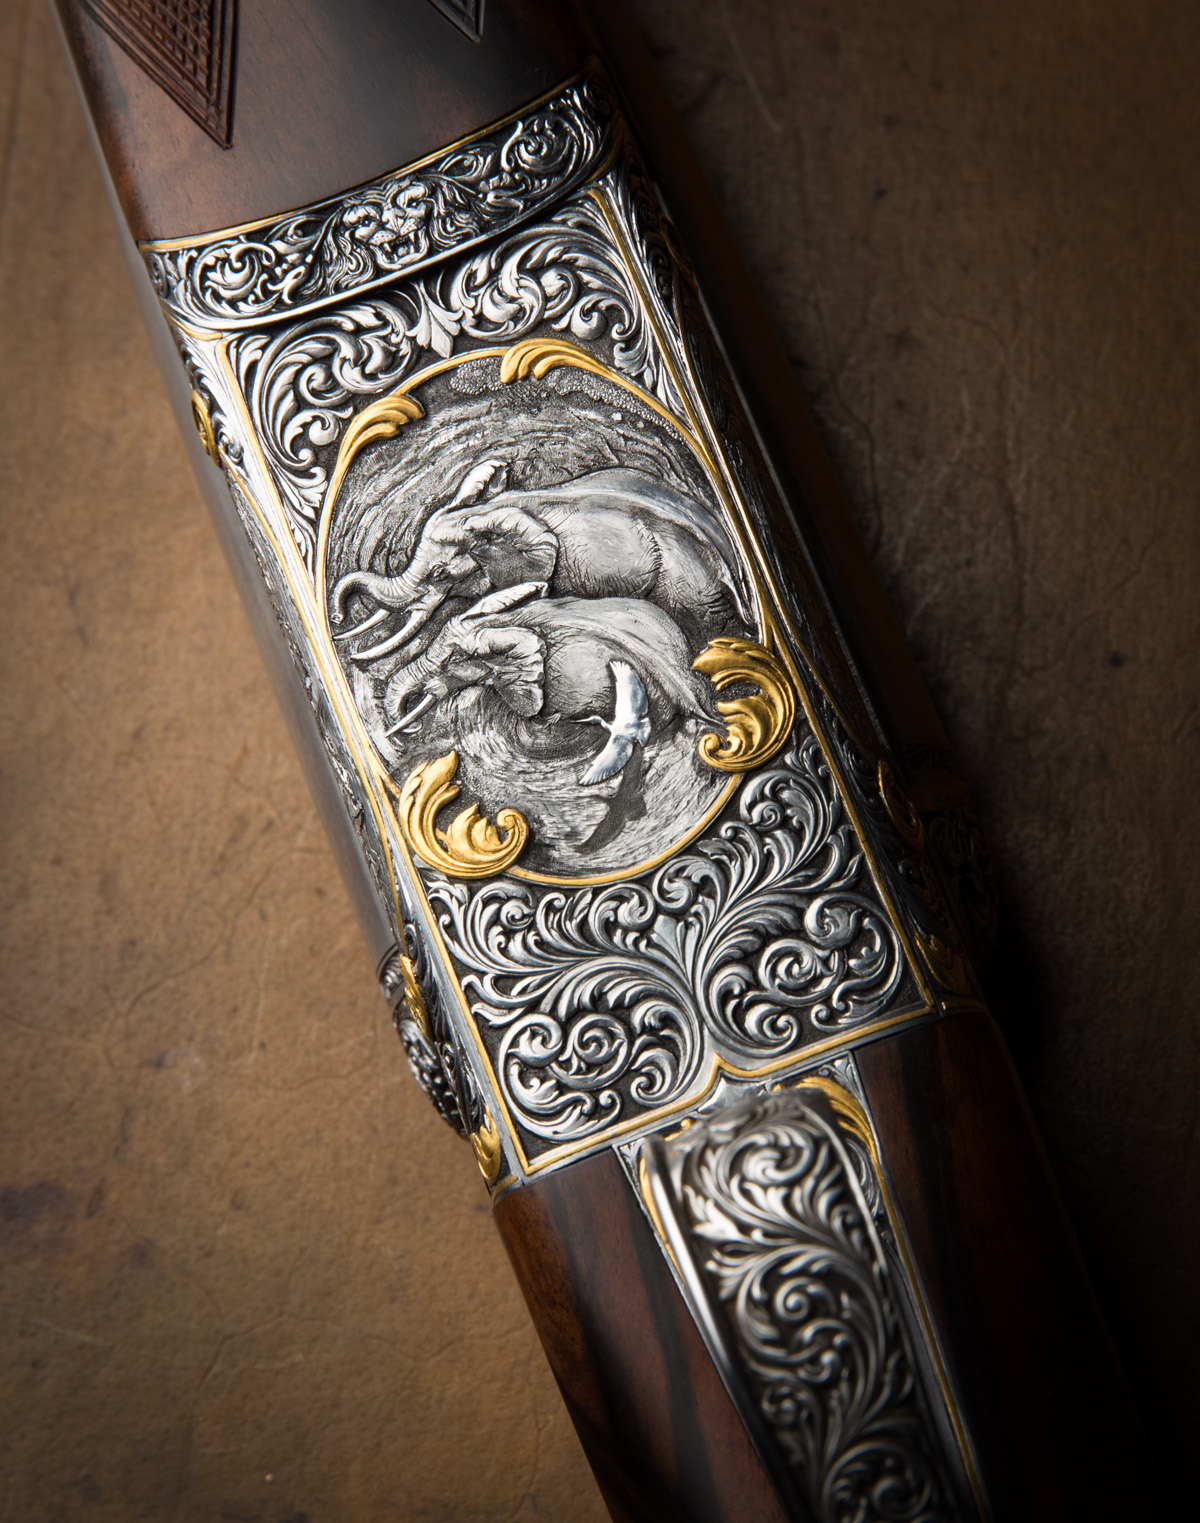 Westley Richards 577 Droplkock